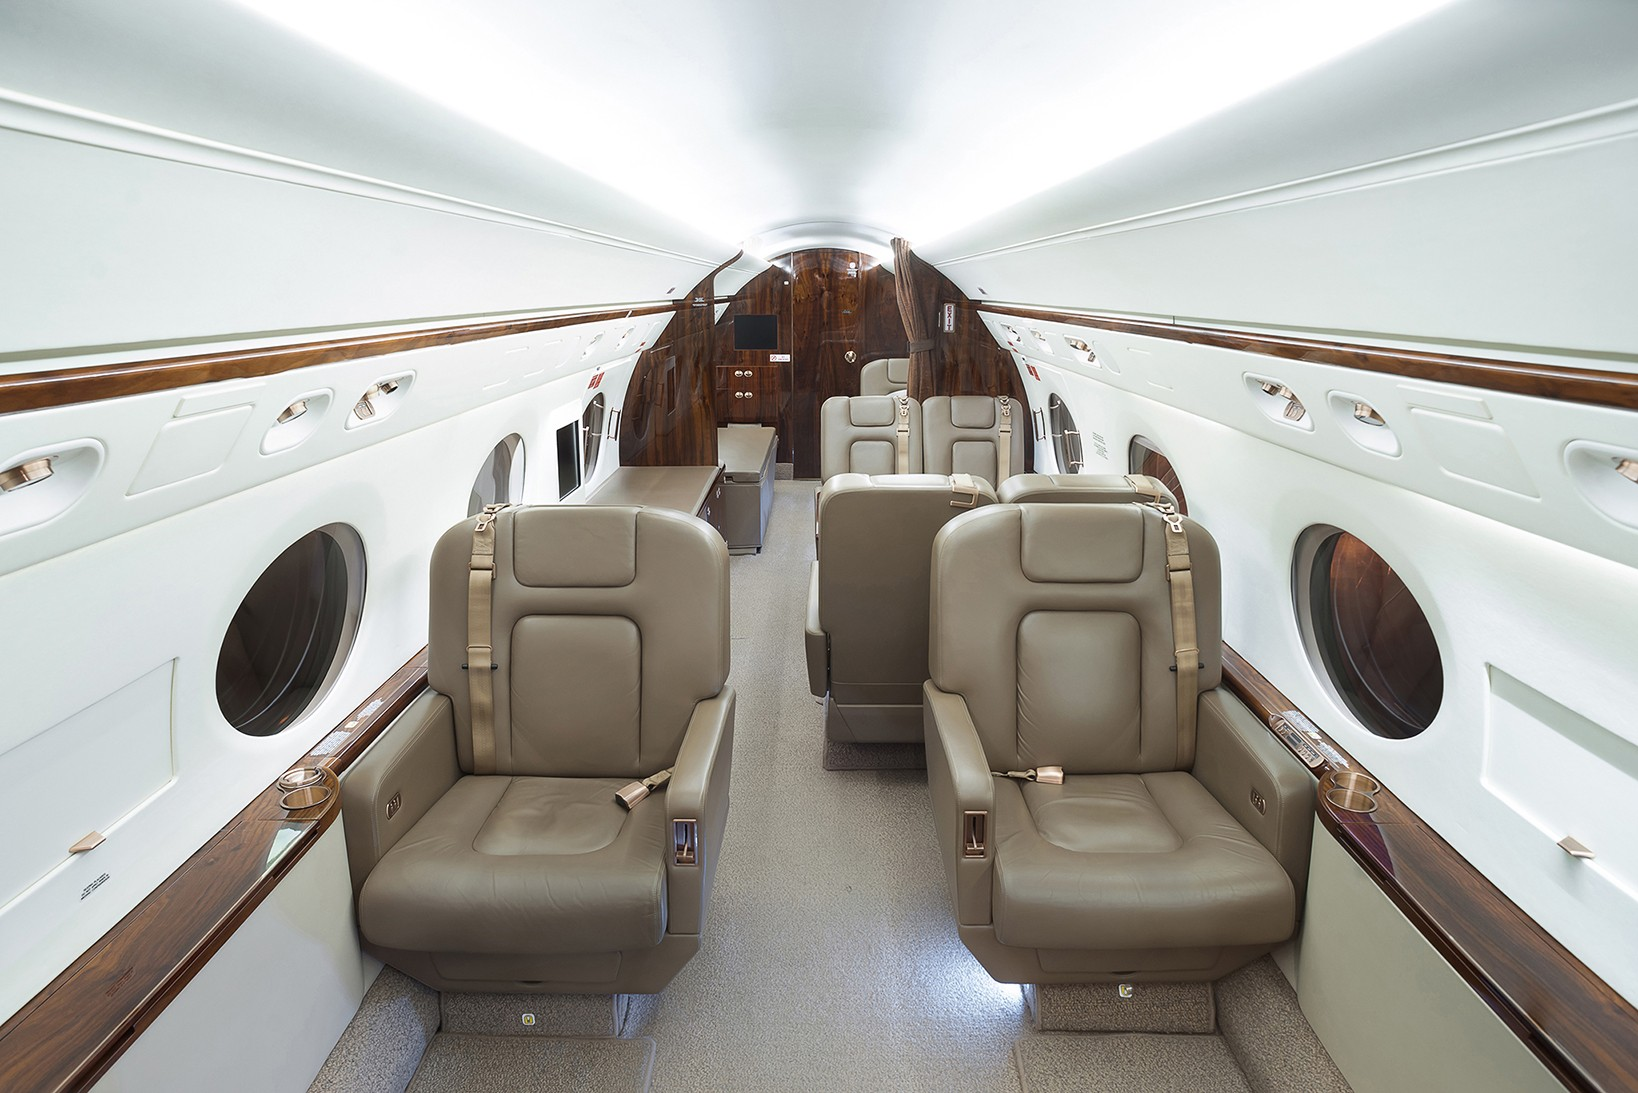 interior of business aviation salon in the portfolio of the photographer